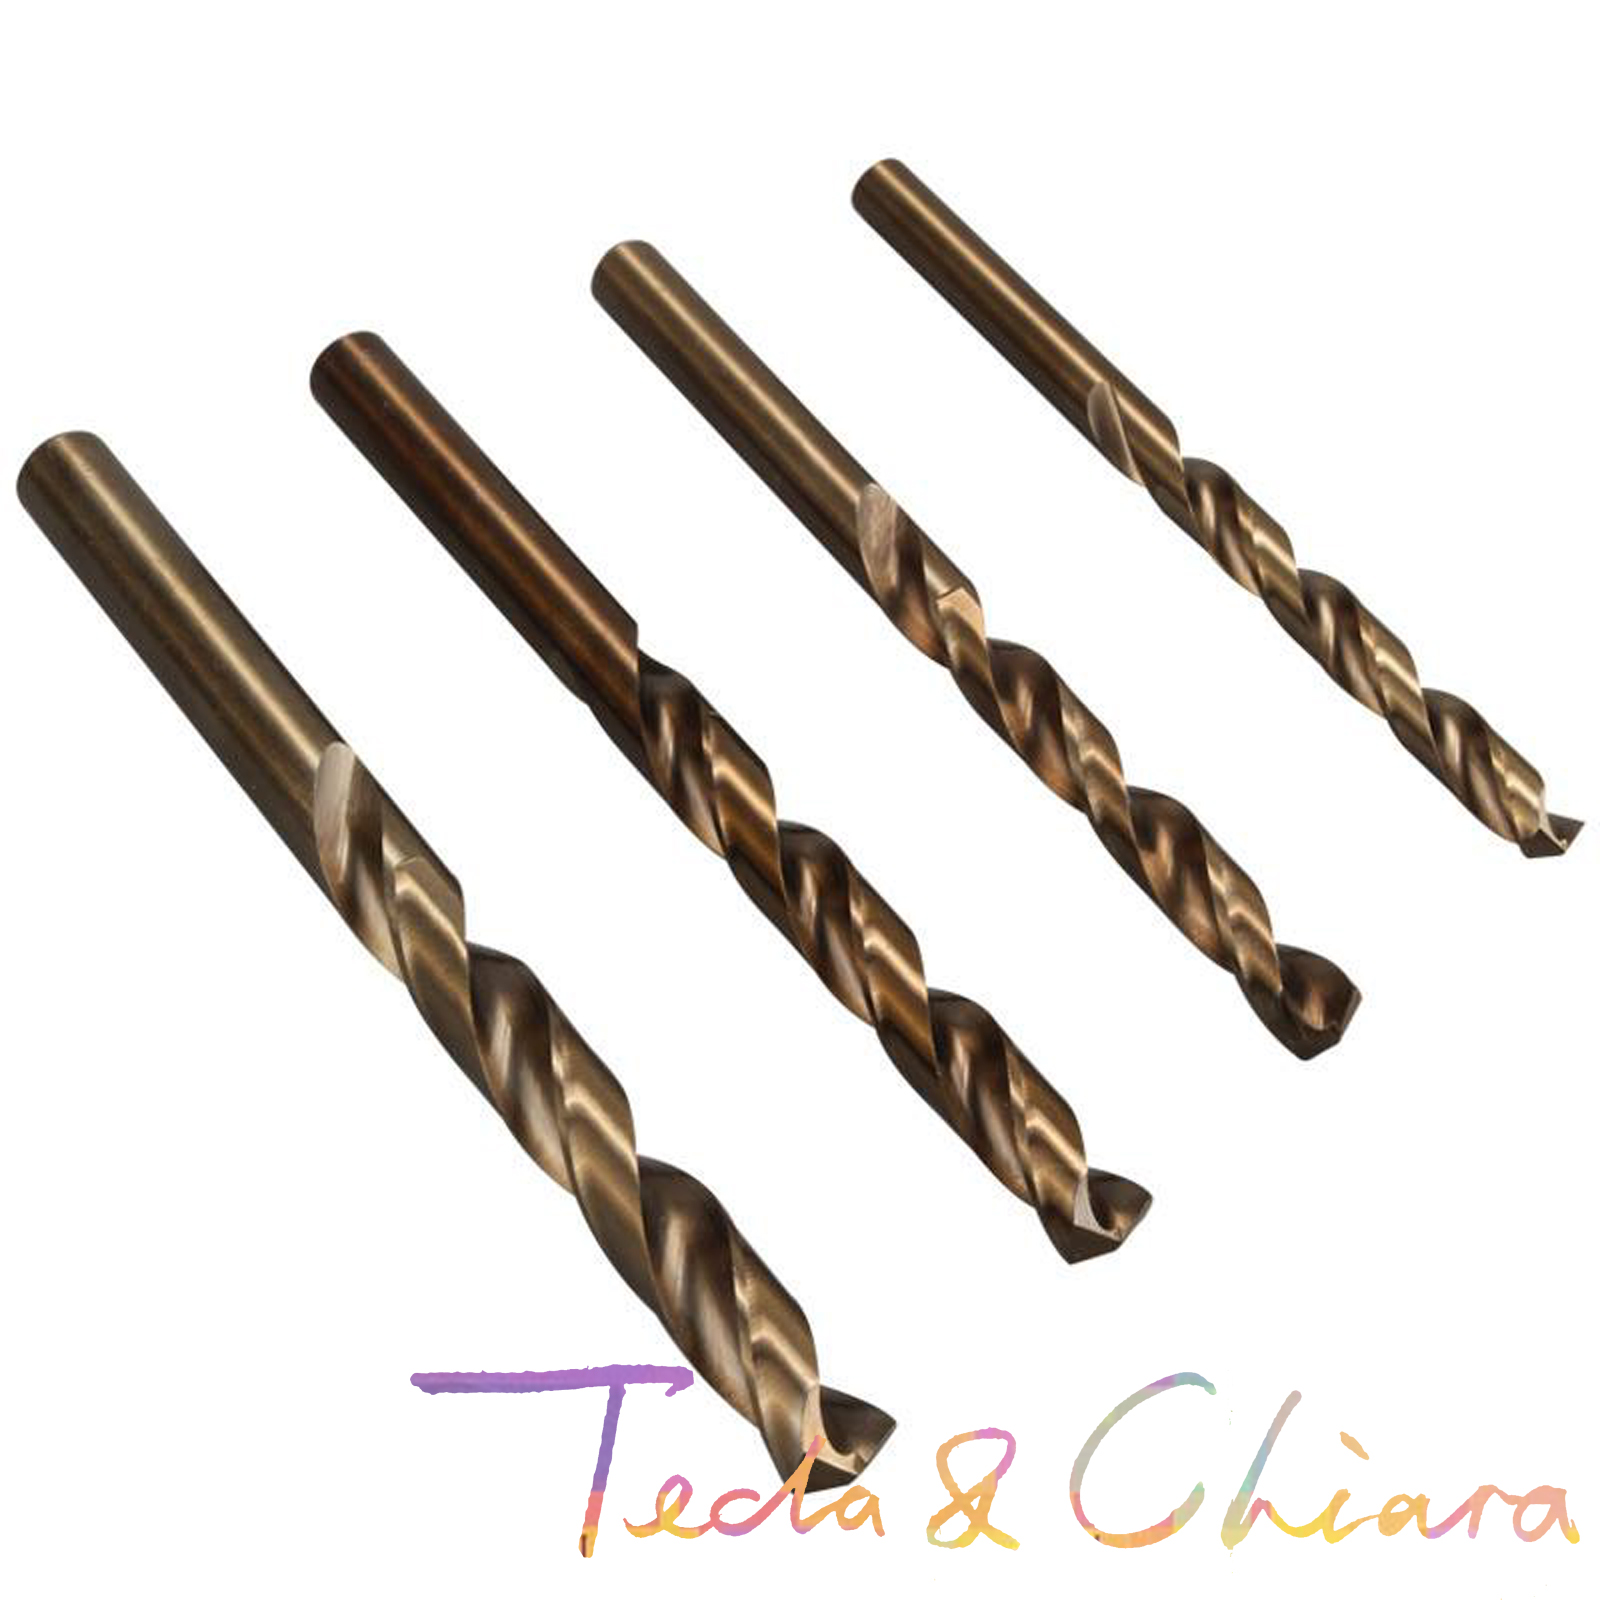 10Pcs 2 2.0 2.1 2.2 2.3 2.4 2.5 2.6 2.7 2.8 2.9 Mm HSS-CO M35 Cobalt Steel Straight Shank Twist Drill Bits For Stainless Steel